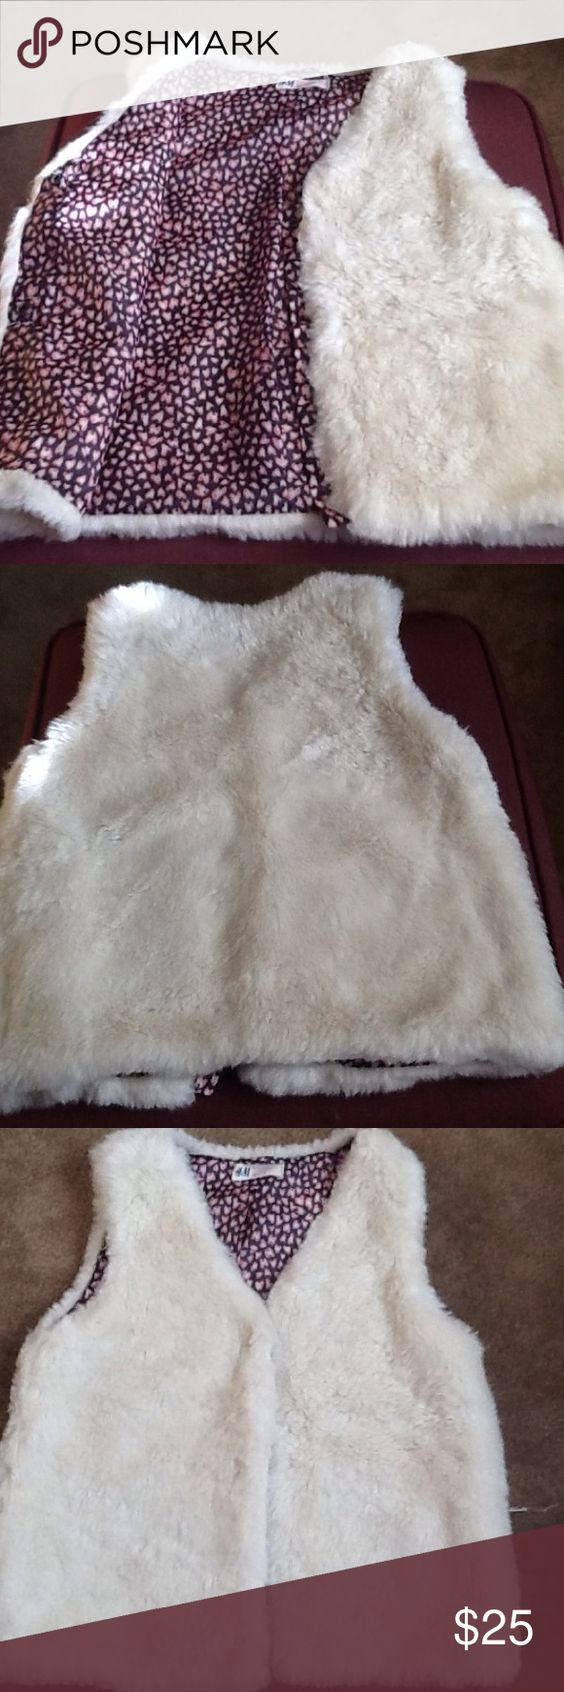 H&M Girls faux fur vest White girls faux fur vest beautiful lining so  cute.  With pink and white black.  3 snaps  in the front. Chest 34 inches and 20 inches long H &M Jackets & Coats Vests